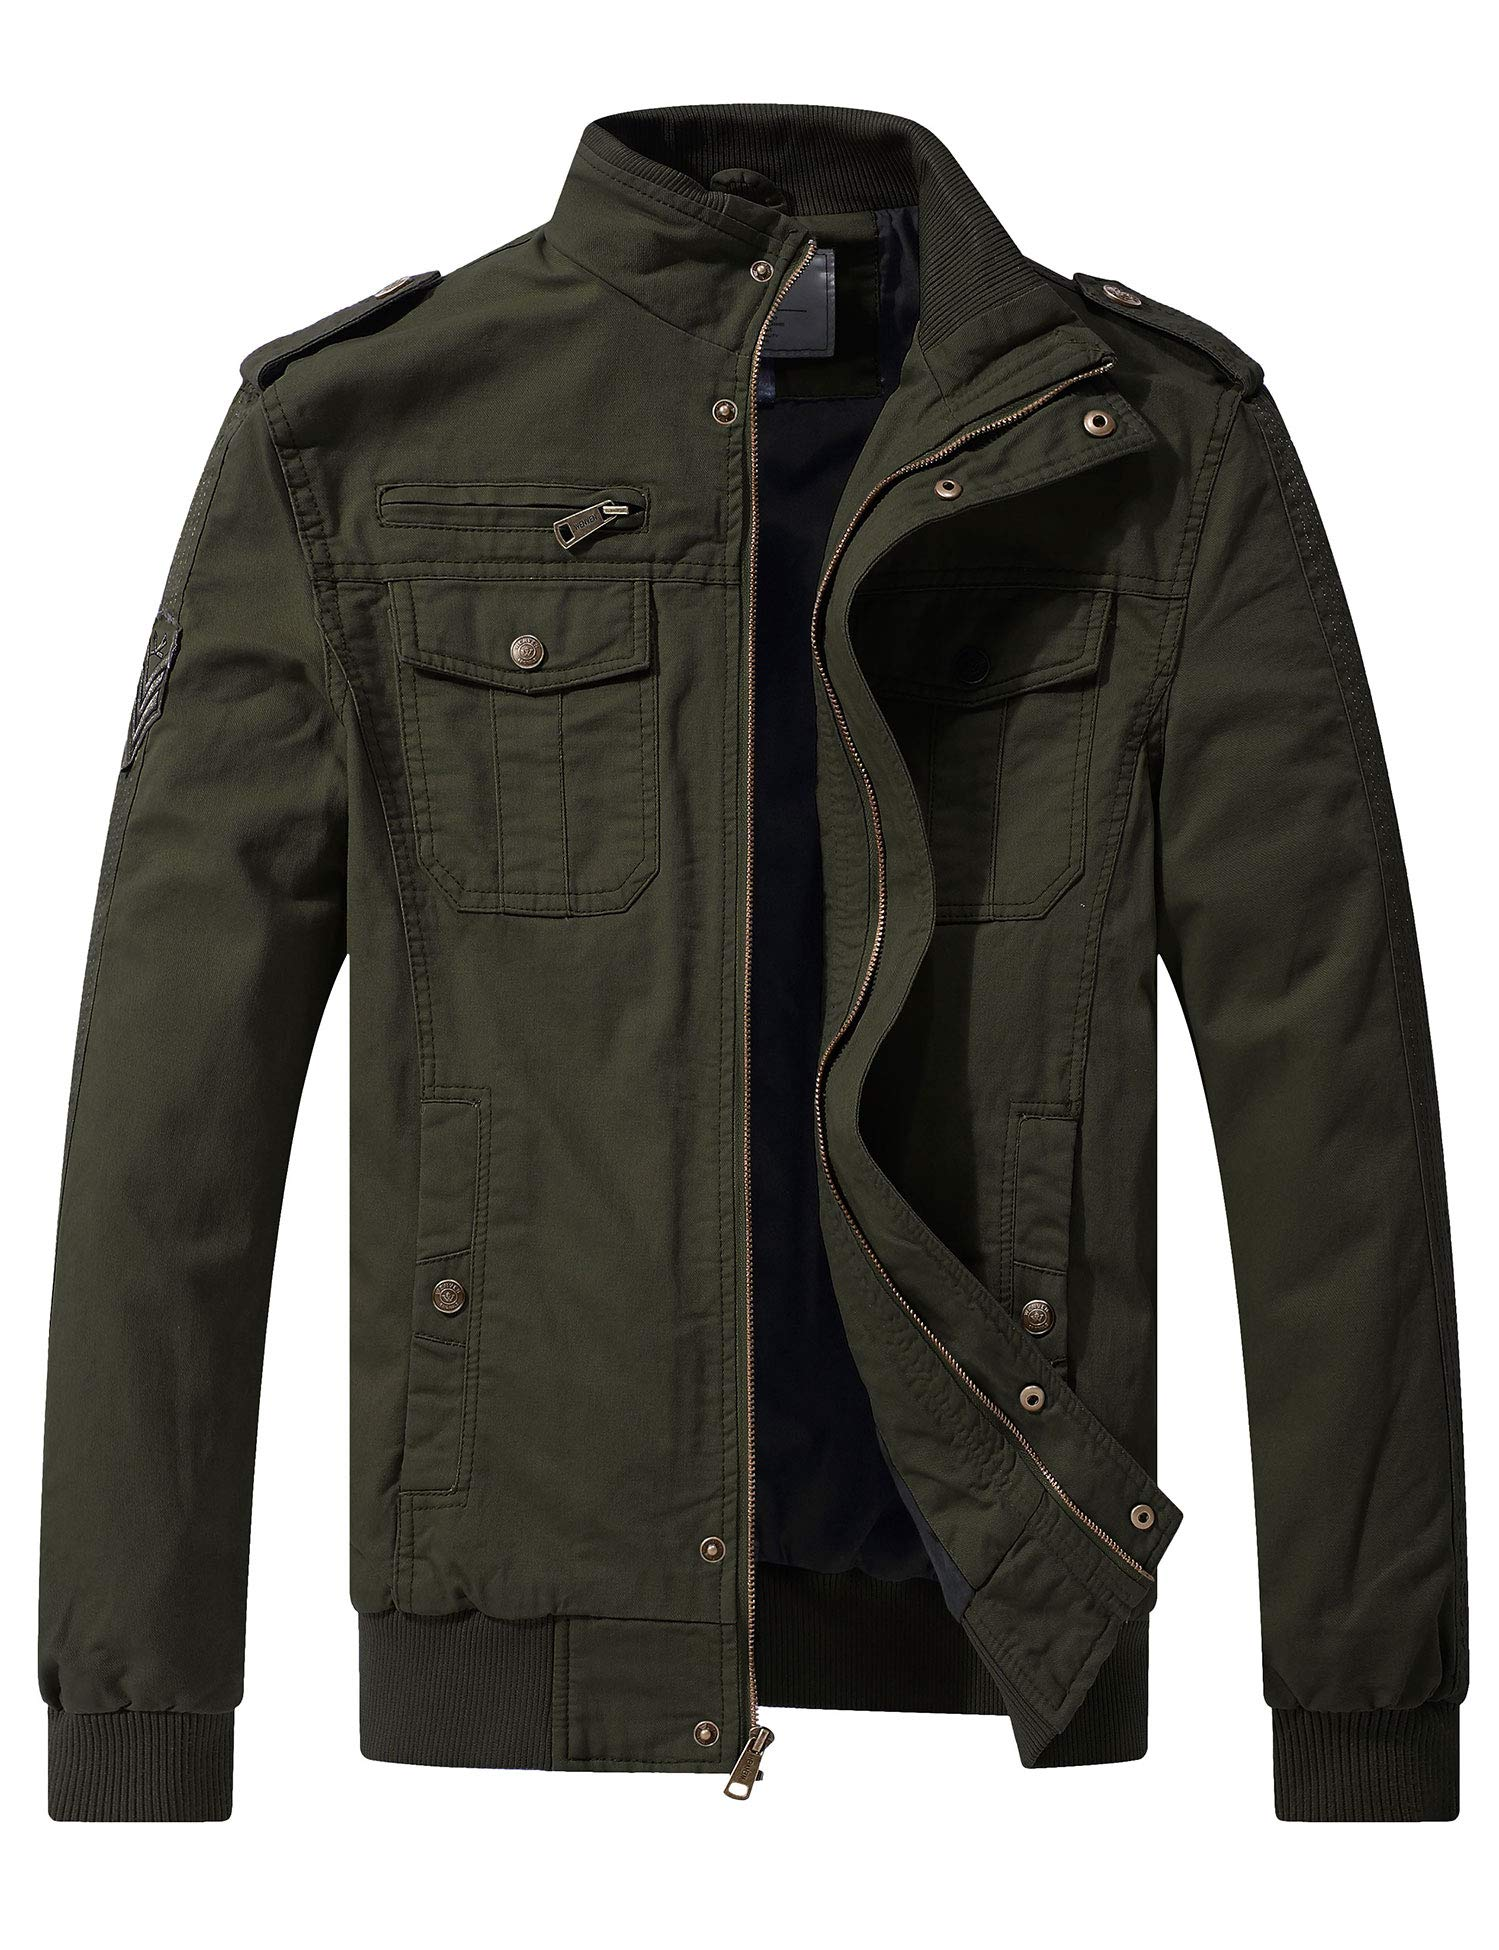 WenVen Men's Casual Cotton Military Jacket (Military Green, Medium) by WenVen